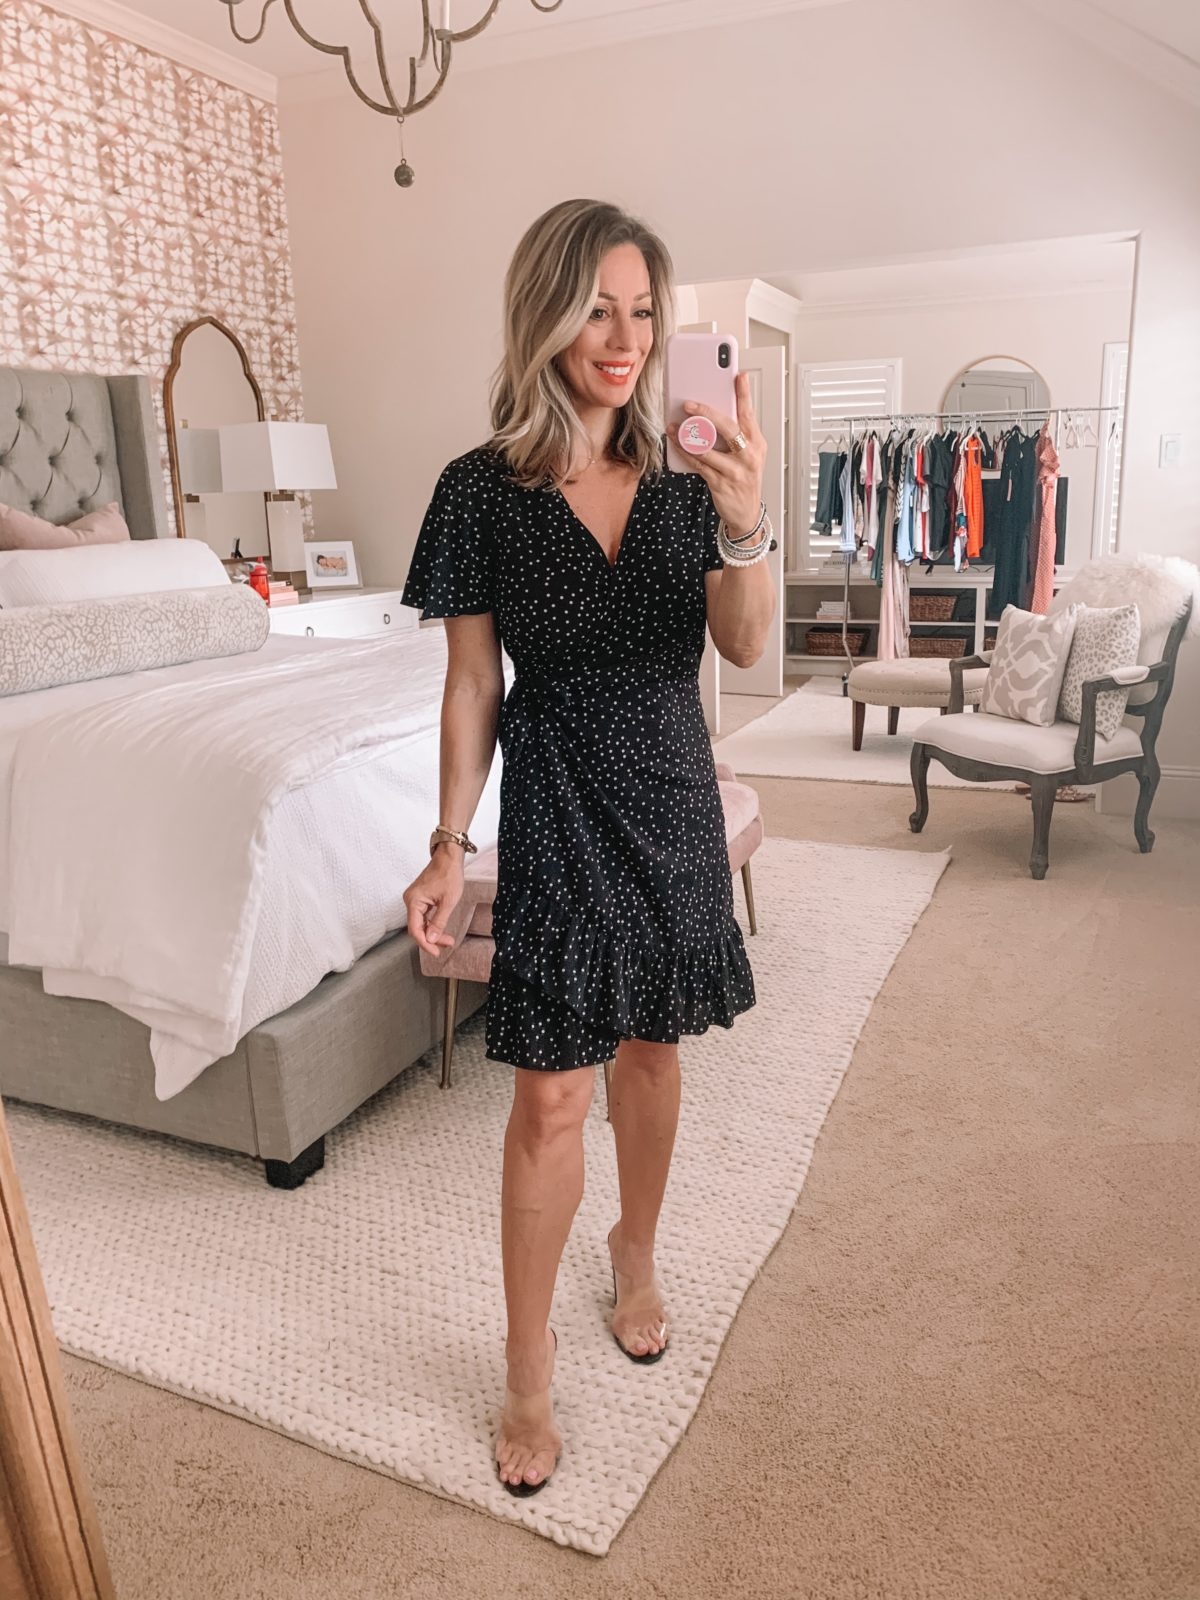 Amazon Fashion Finds, Polka Dot Wrap Mini Dress, Clear Heels